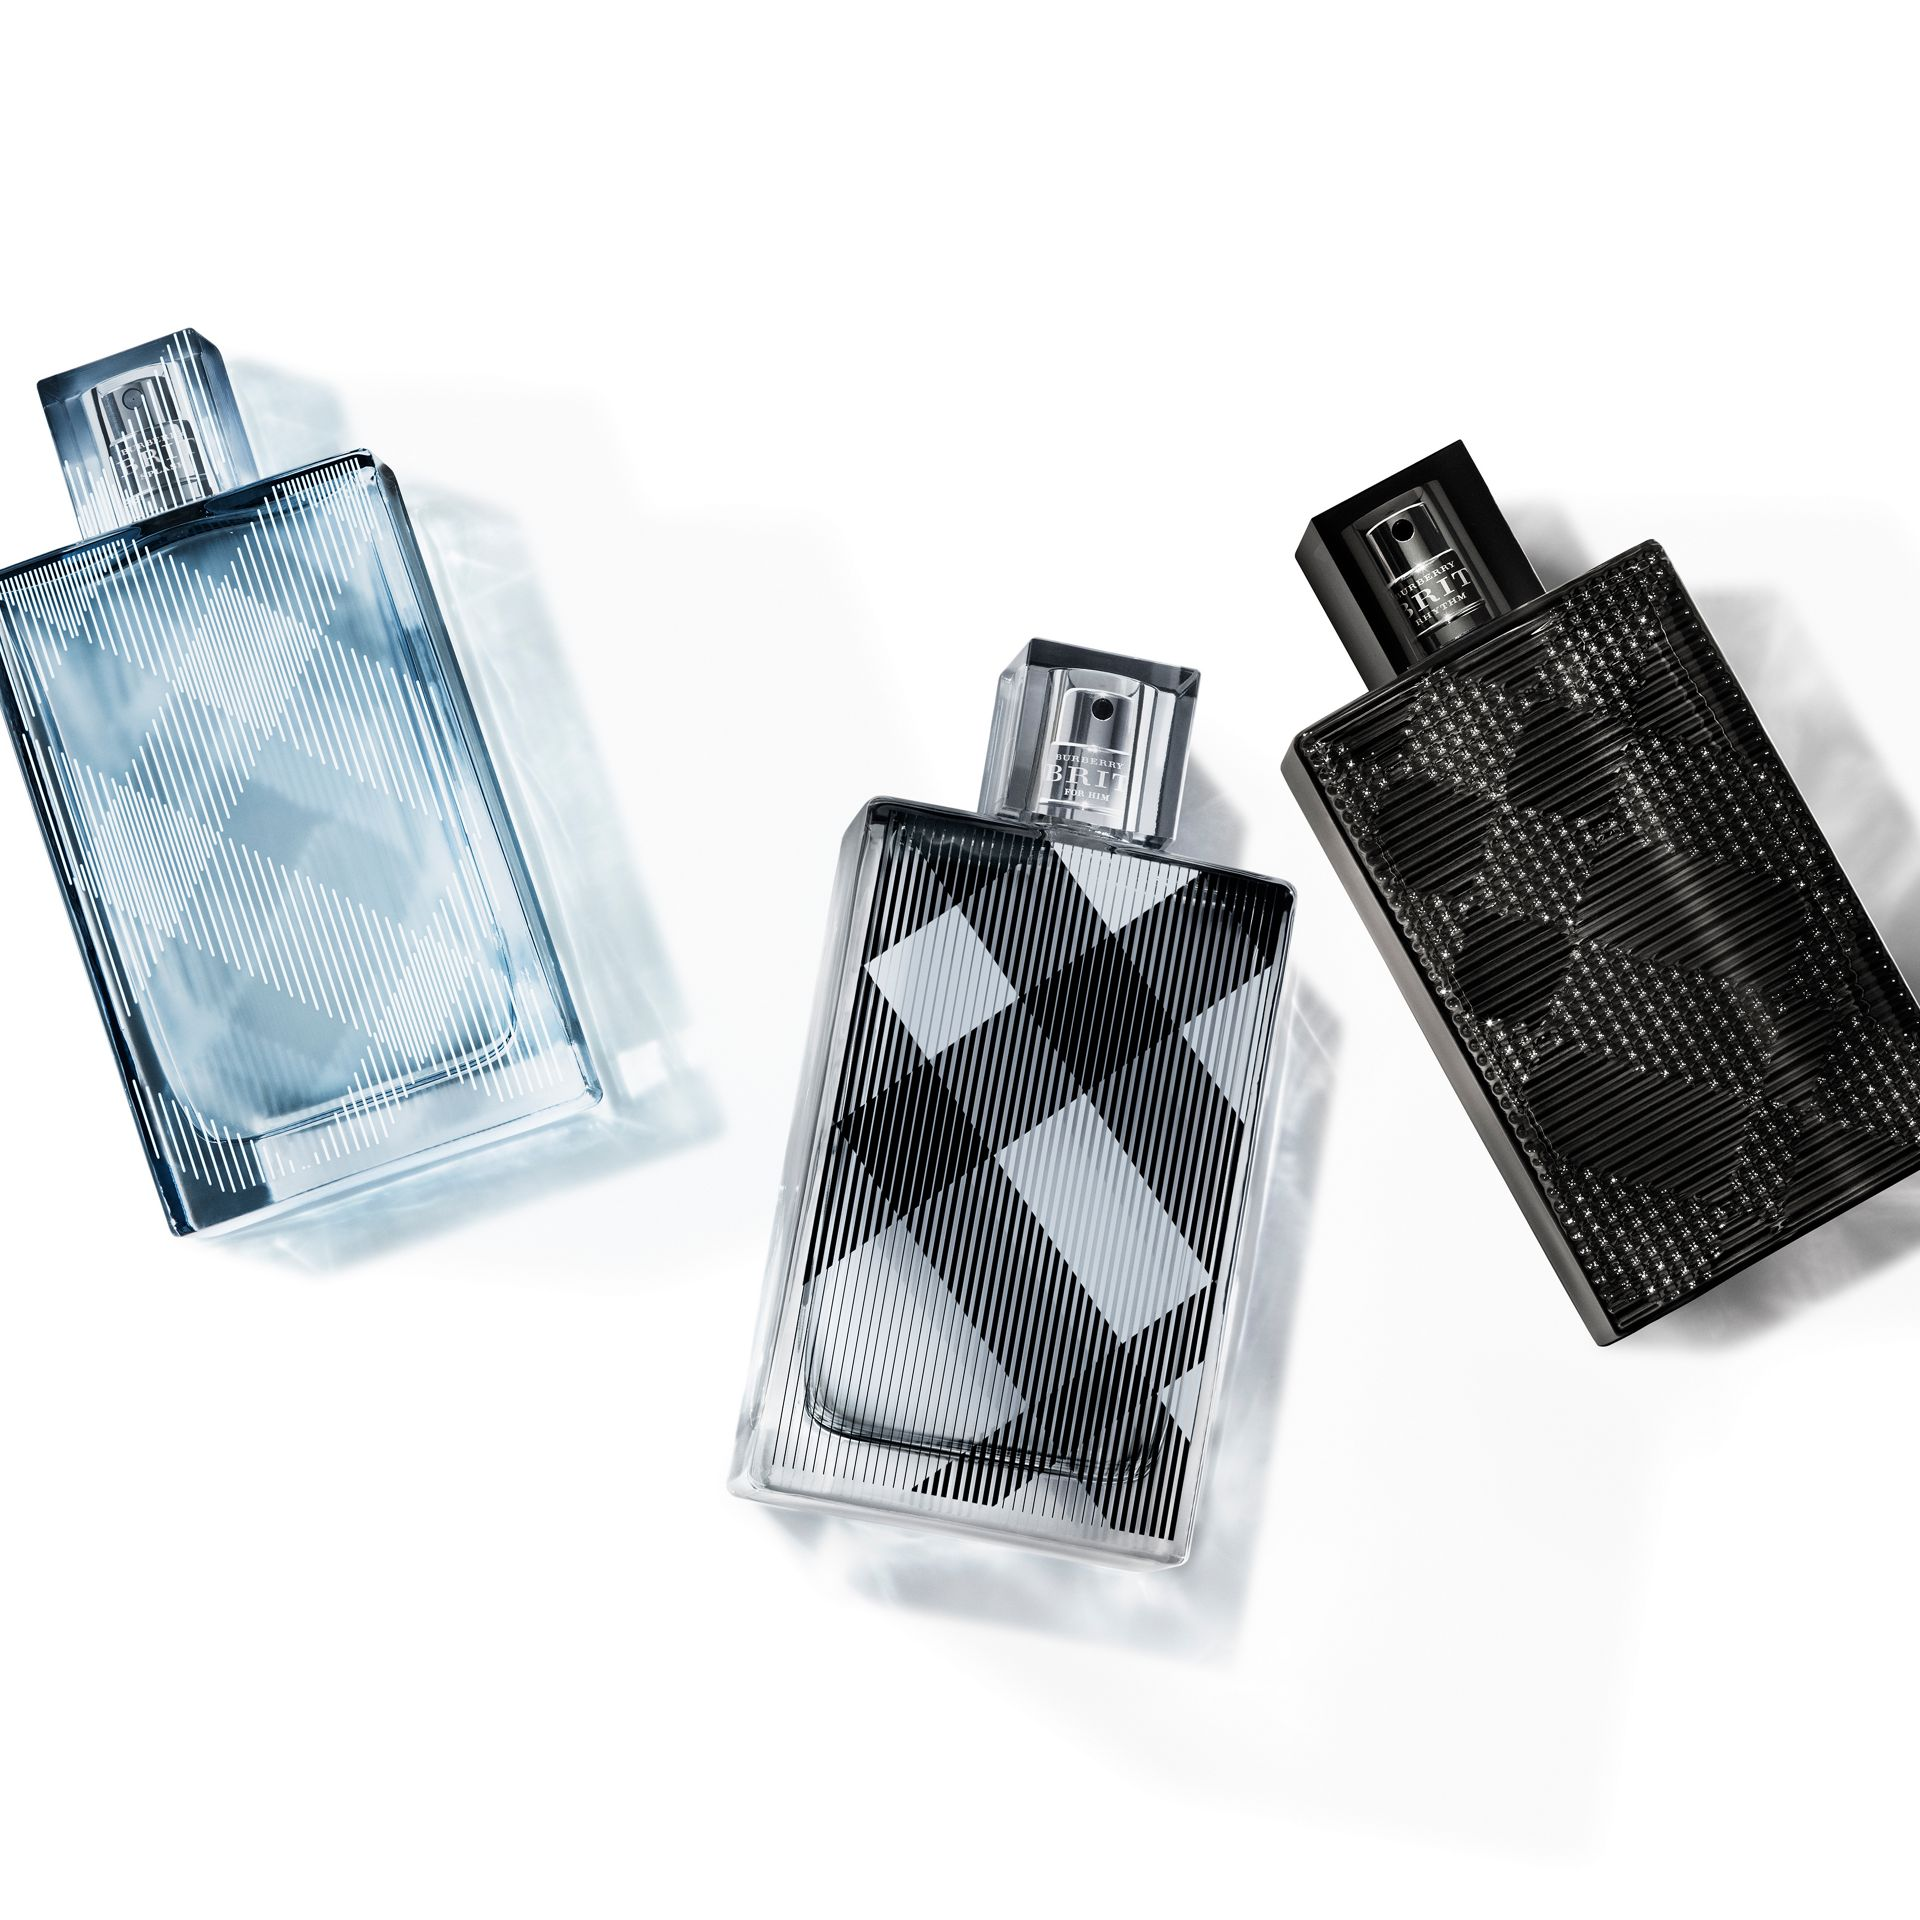 Burberry Brit Rhythm 濃郁淡香水 50ml - 圖庫照片 3